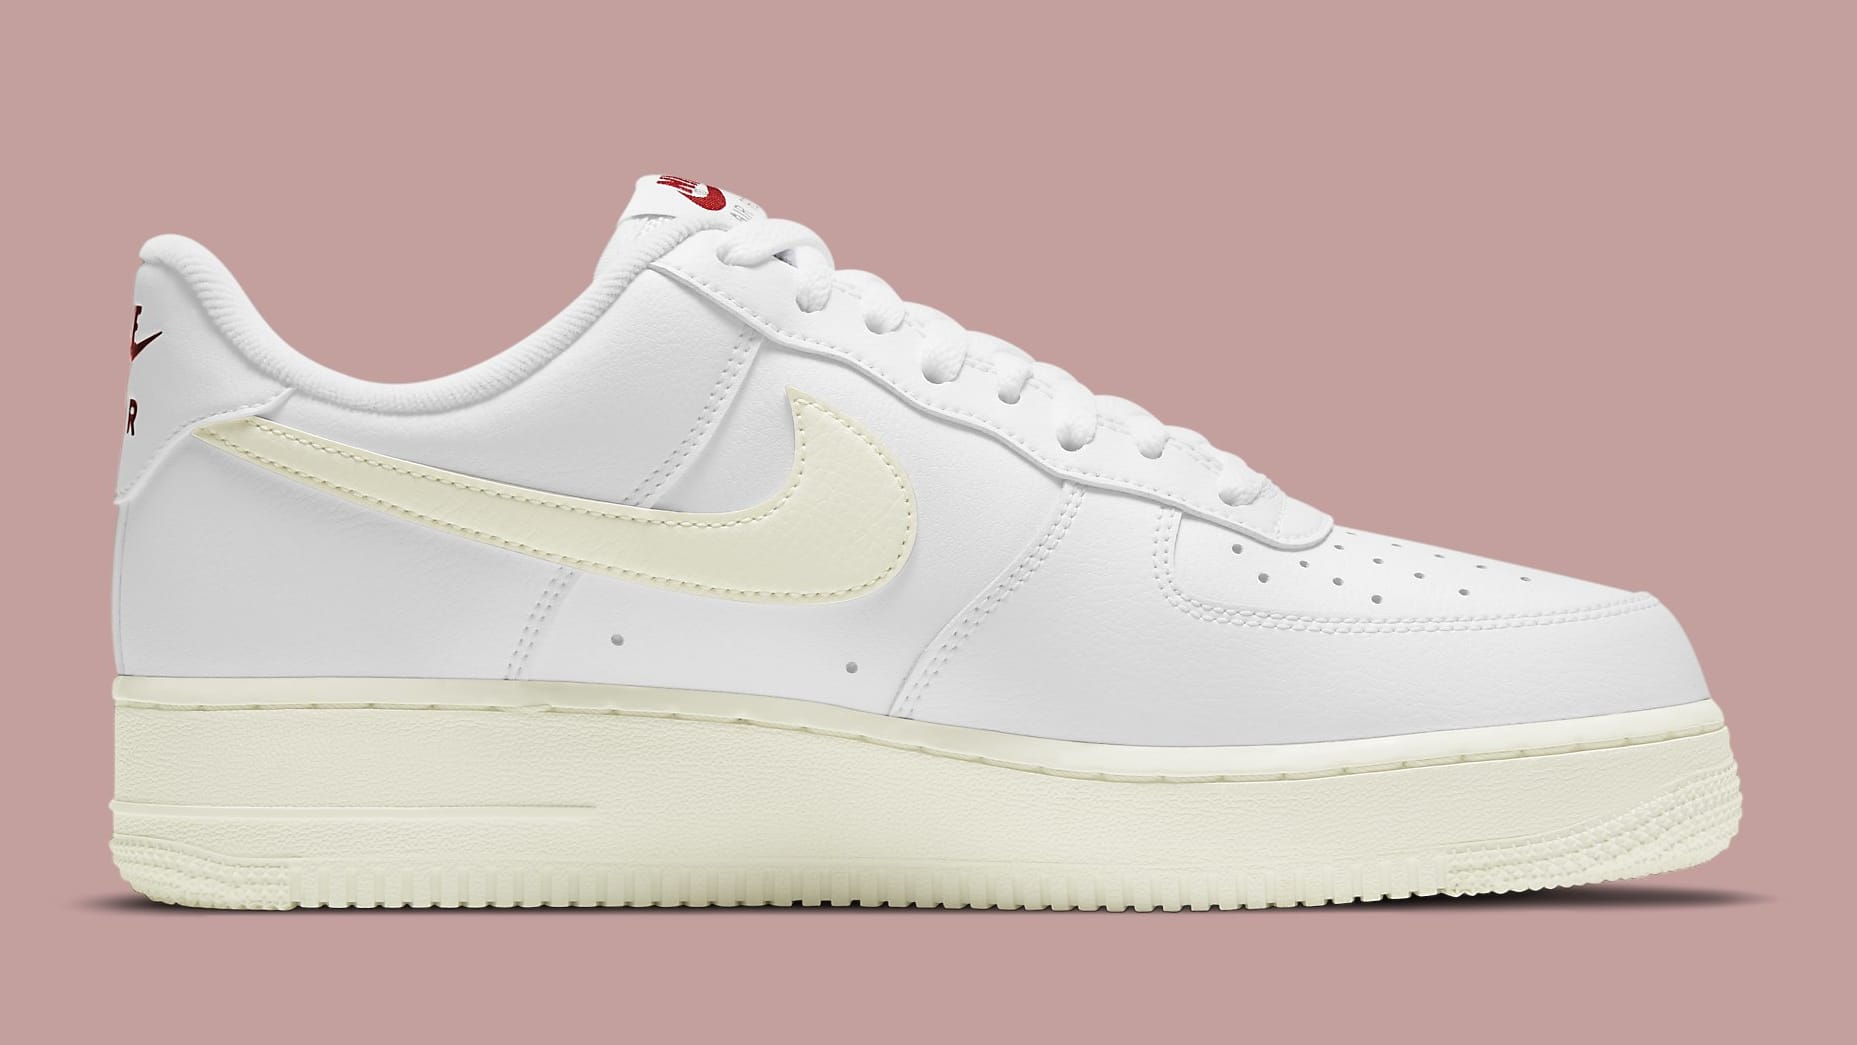 Nike Air Force 1 Low Valentine's Day 2021 Release Date DD7117-100 Medial